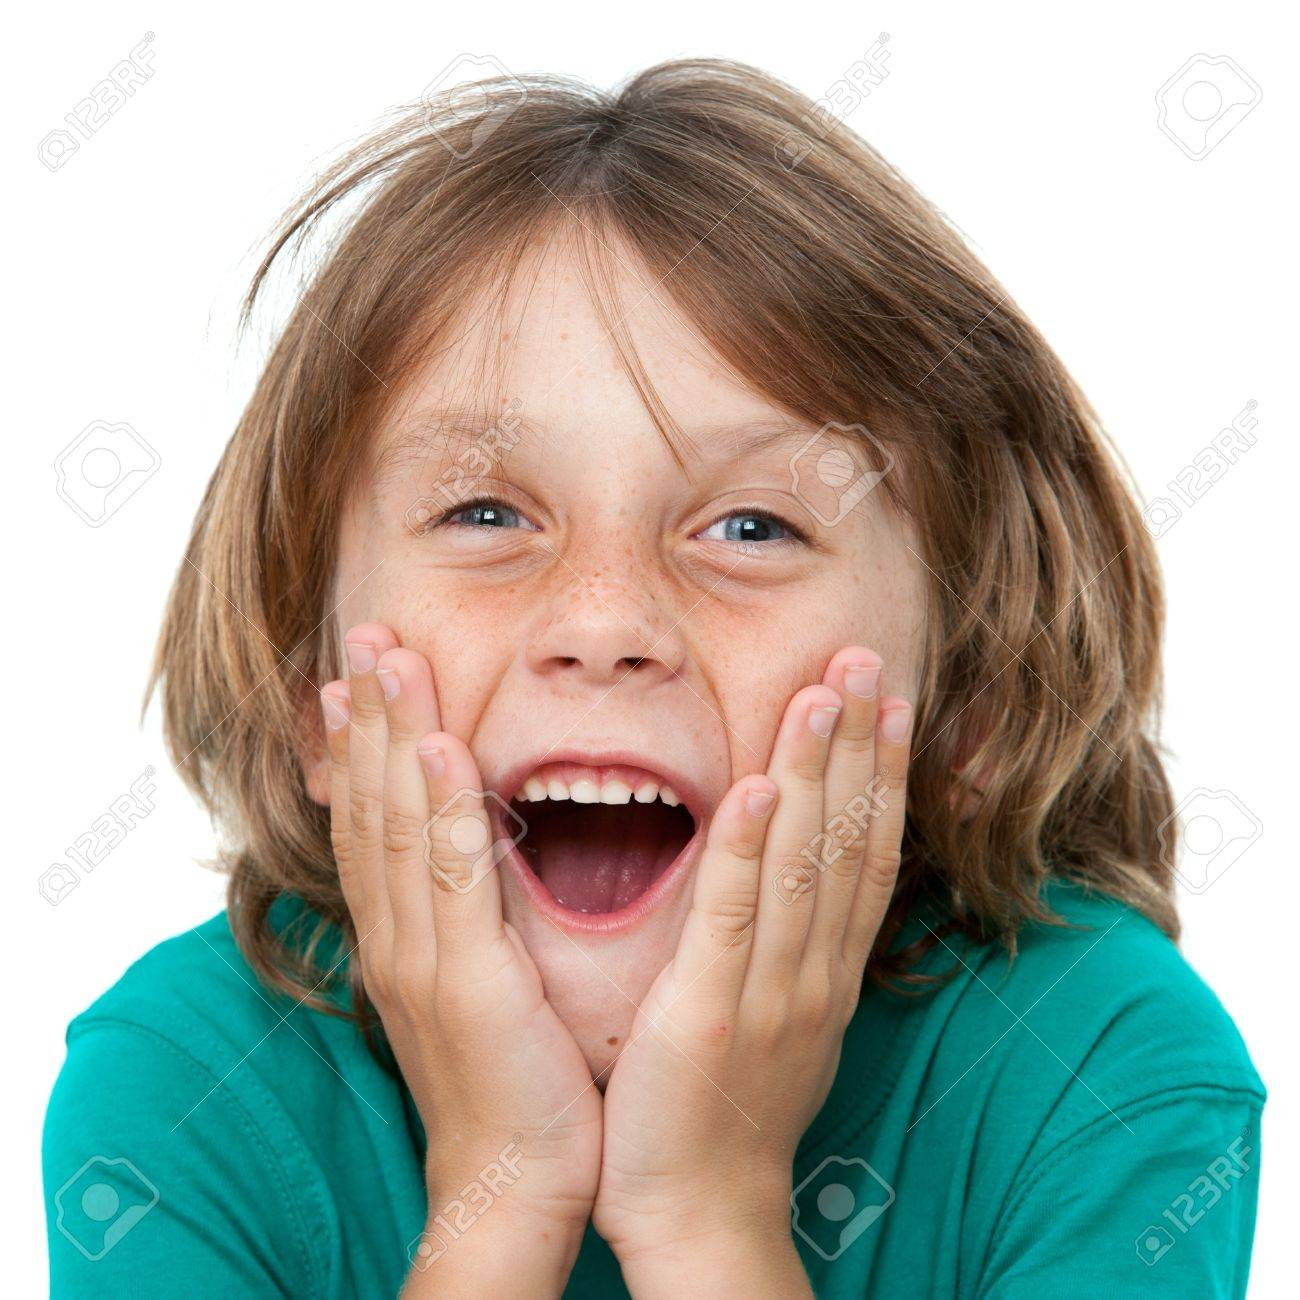 Close up portrait of boy with surprising face expression.Isolated on white. Stock Photo - 16234447